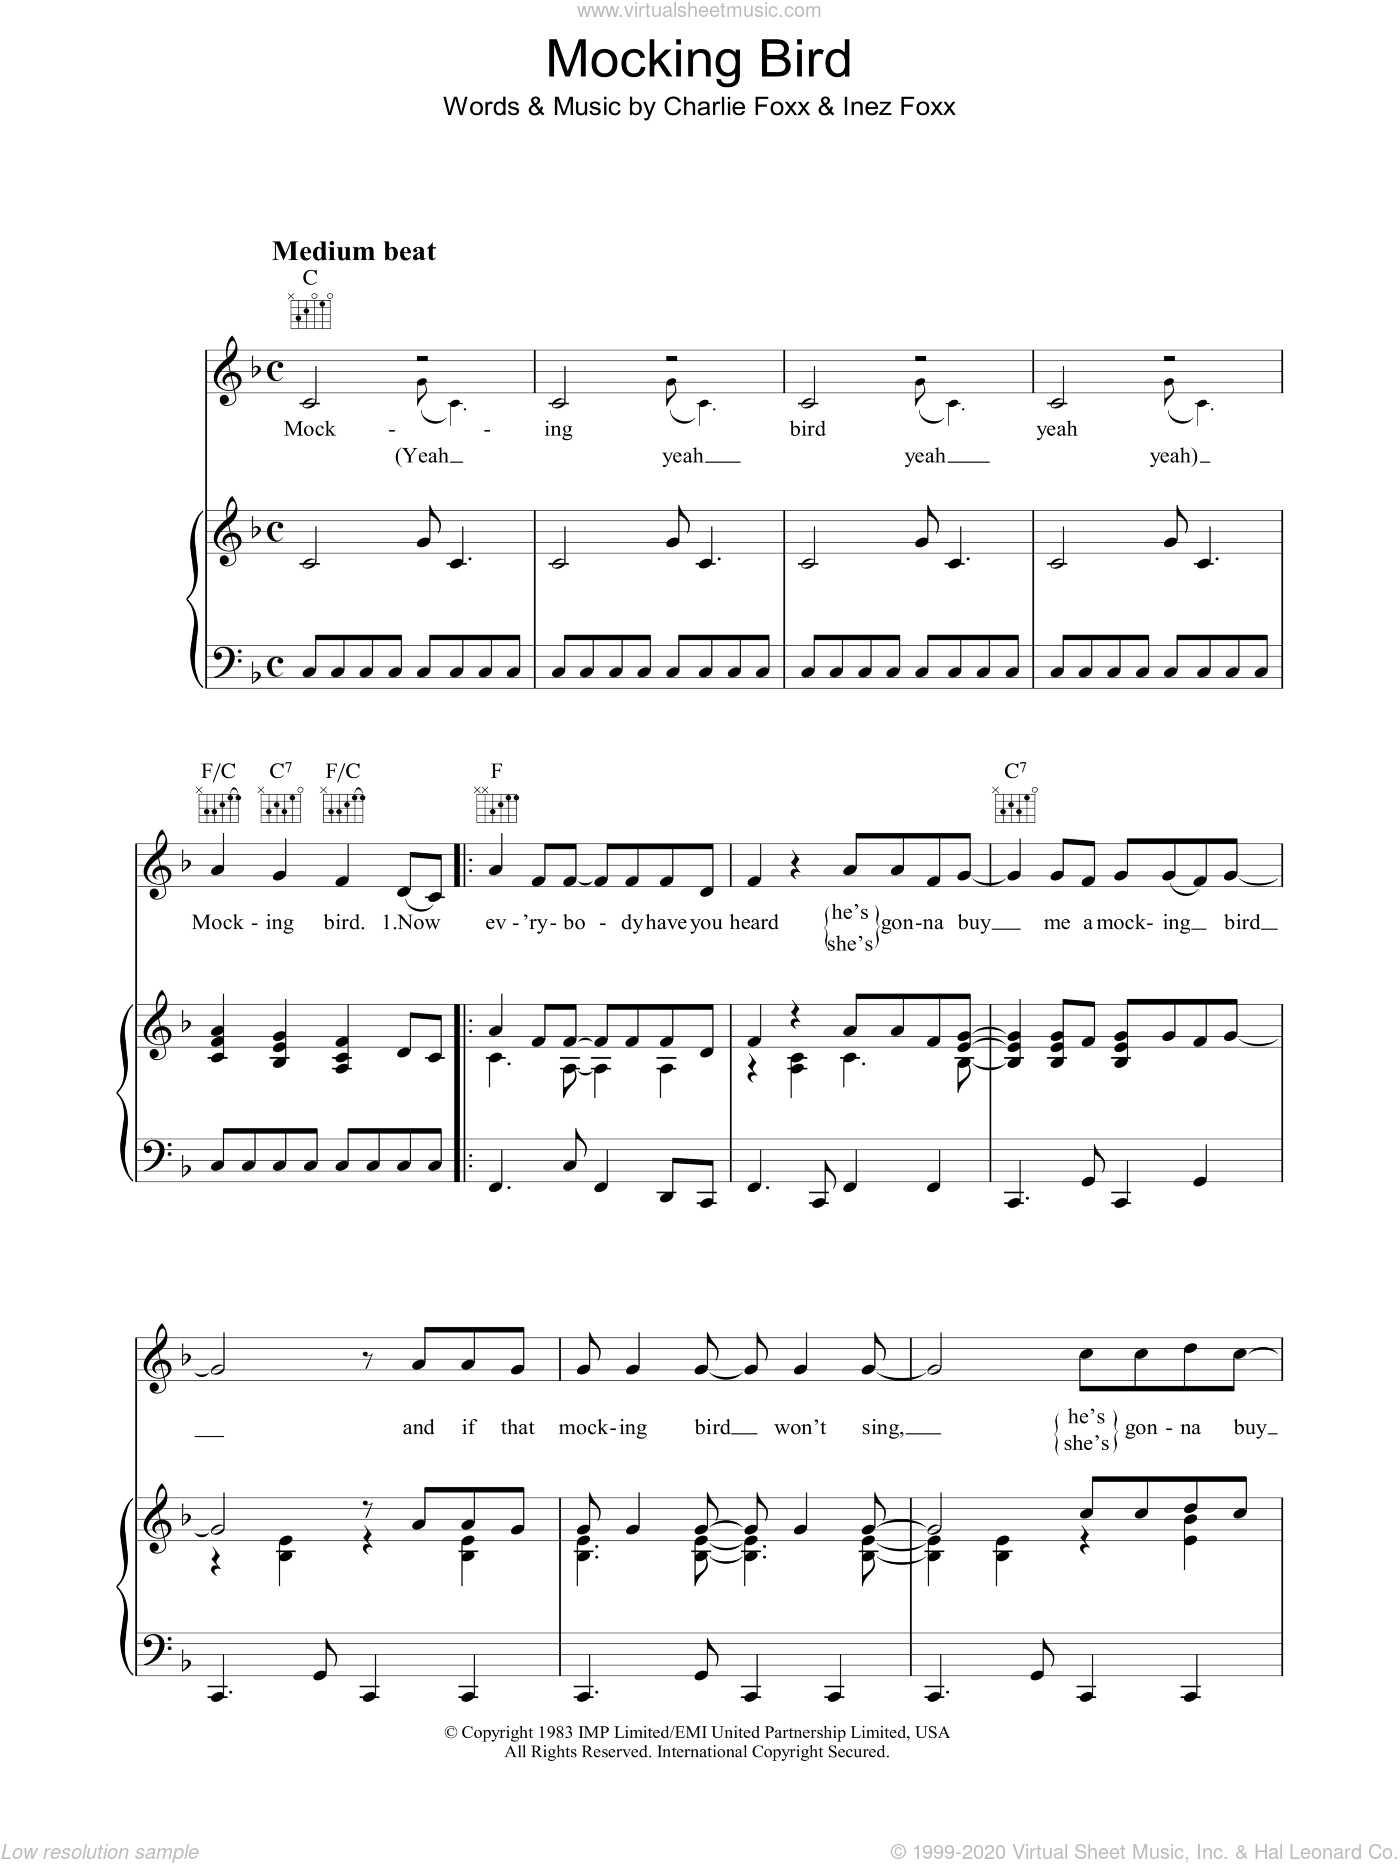 Mocking Bird sheet music for voice, piano or guitar by Charlie Foxx